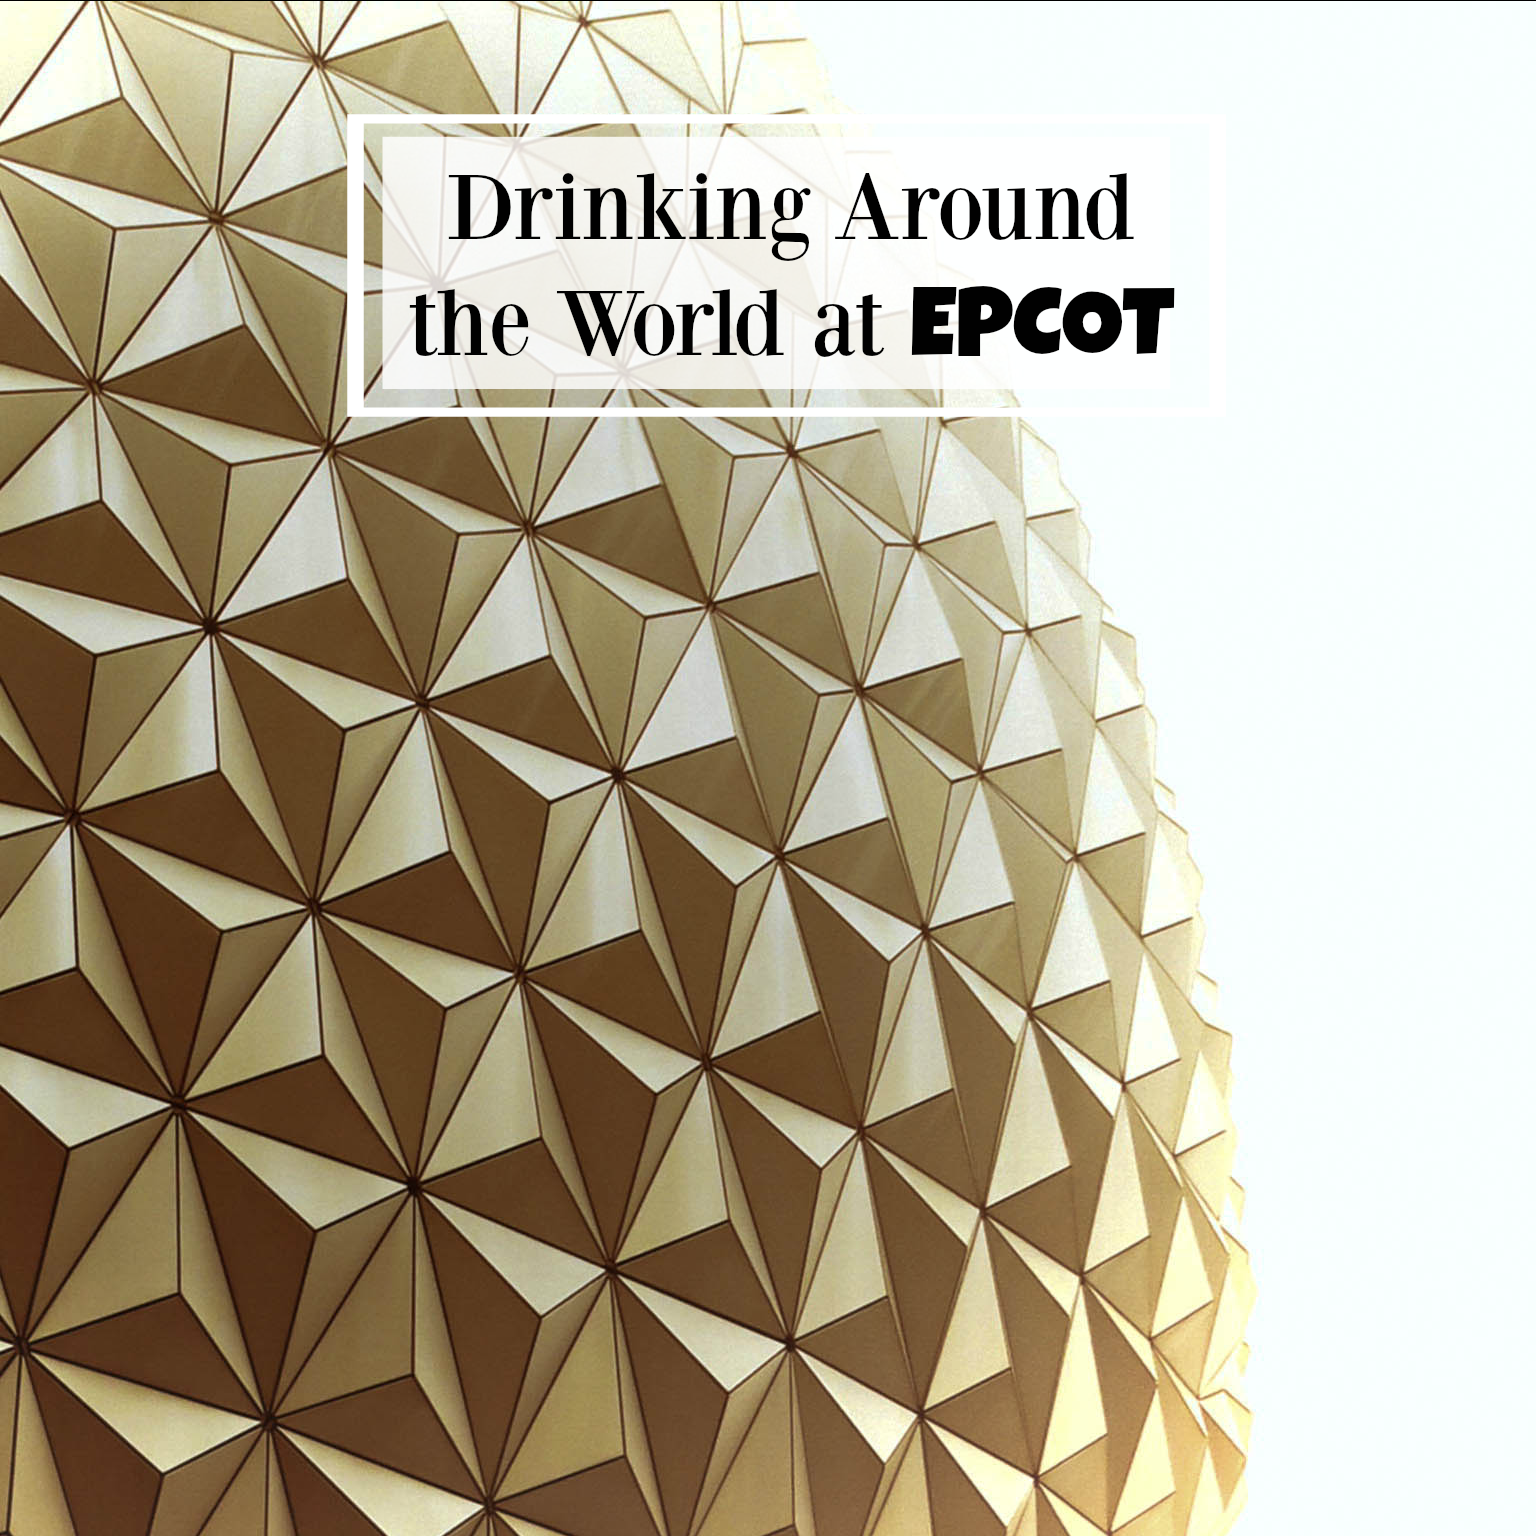 drinking around the world Epcot